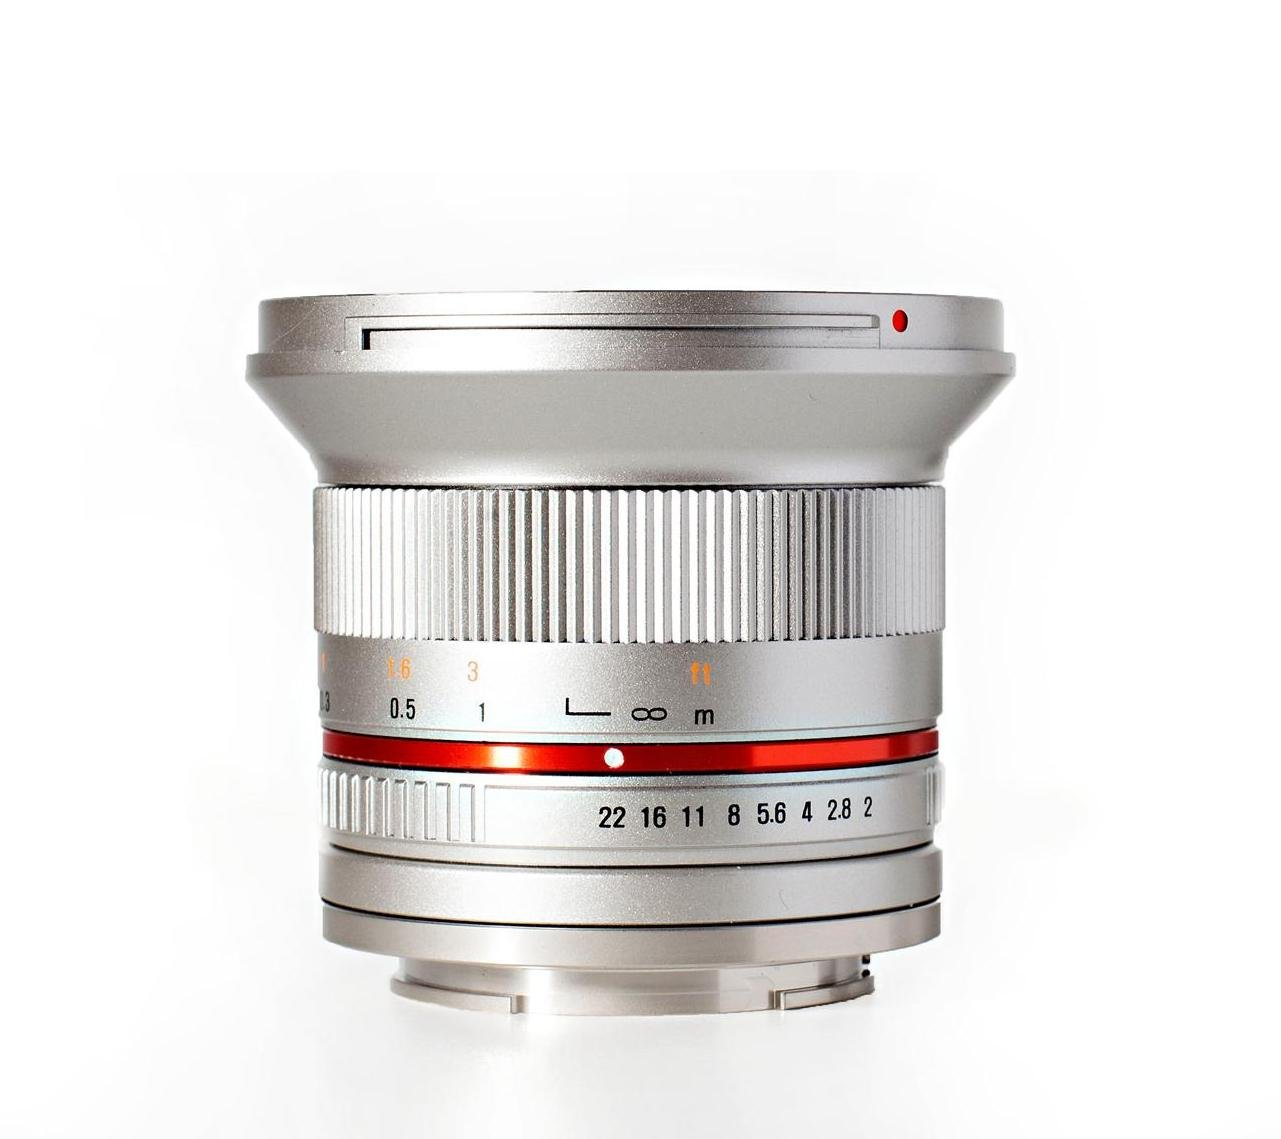 Rokinon RK12M-MFT-SIL 12mm F2.0 Ultra Wide Angle Lens for Olympus/Panasonic Micro 4/3 Cameras by Rokinon